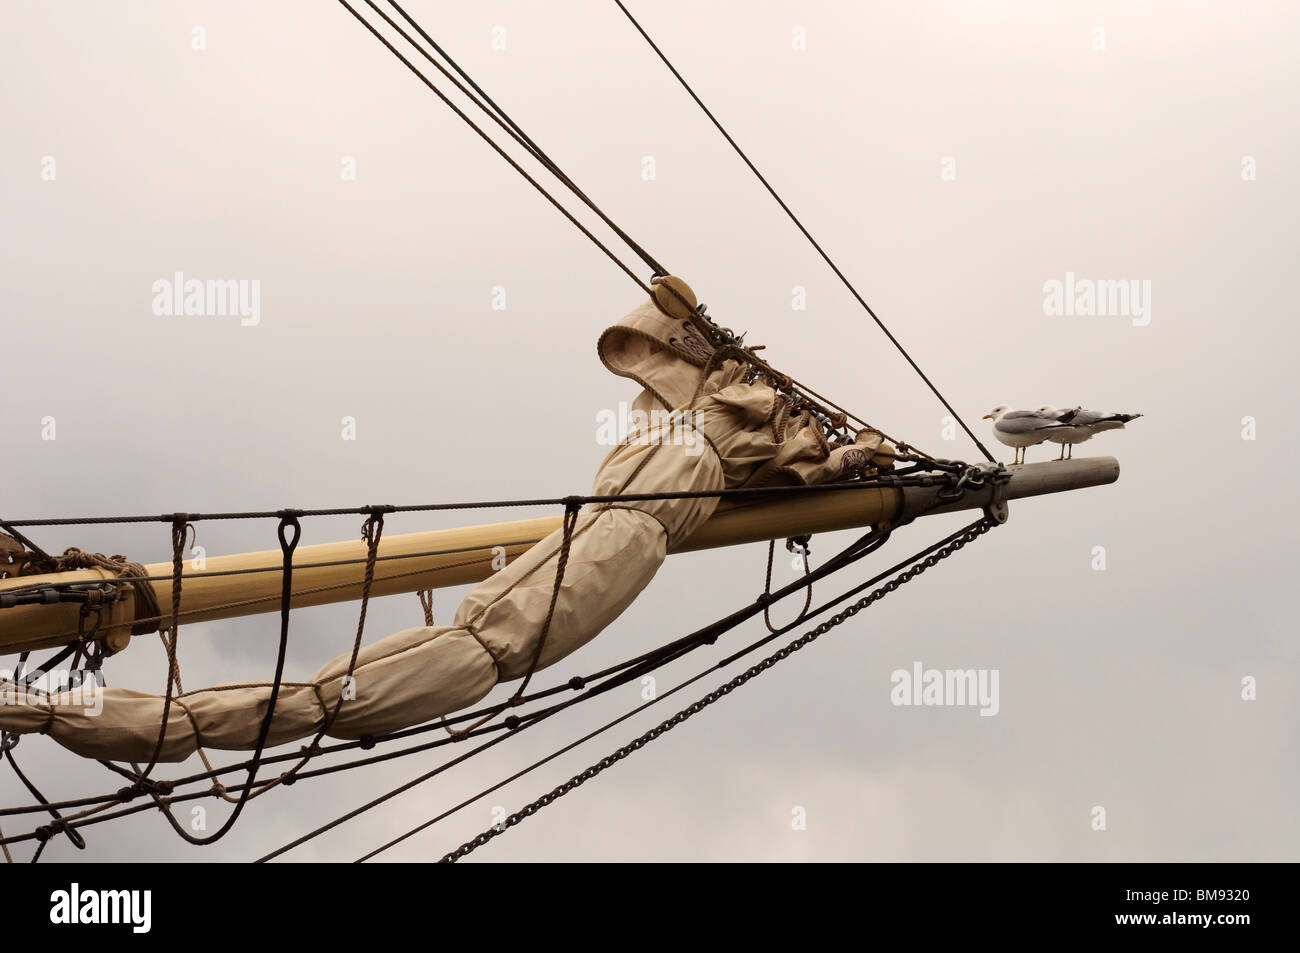 A brig bowsprit with folded sail and two seagulls - Stock Image